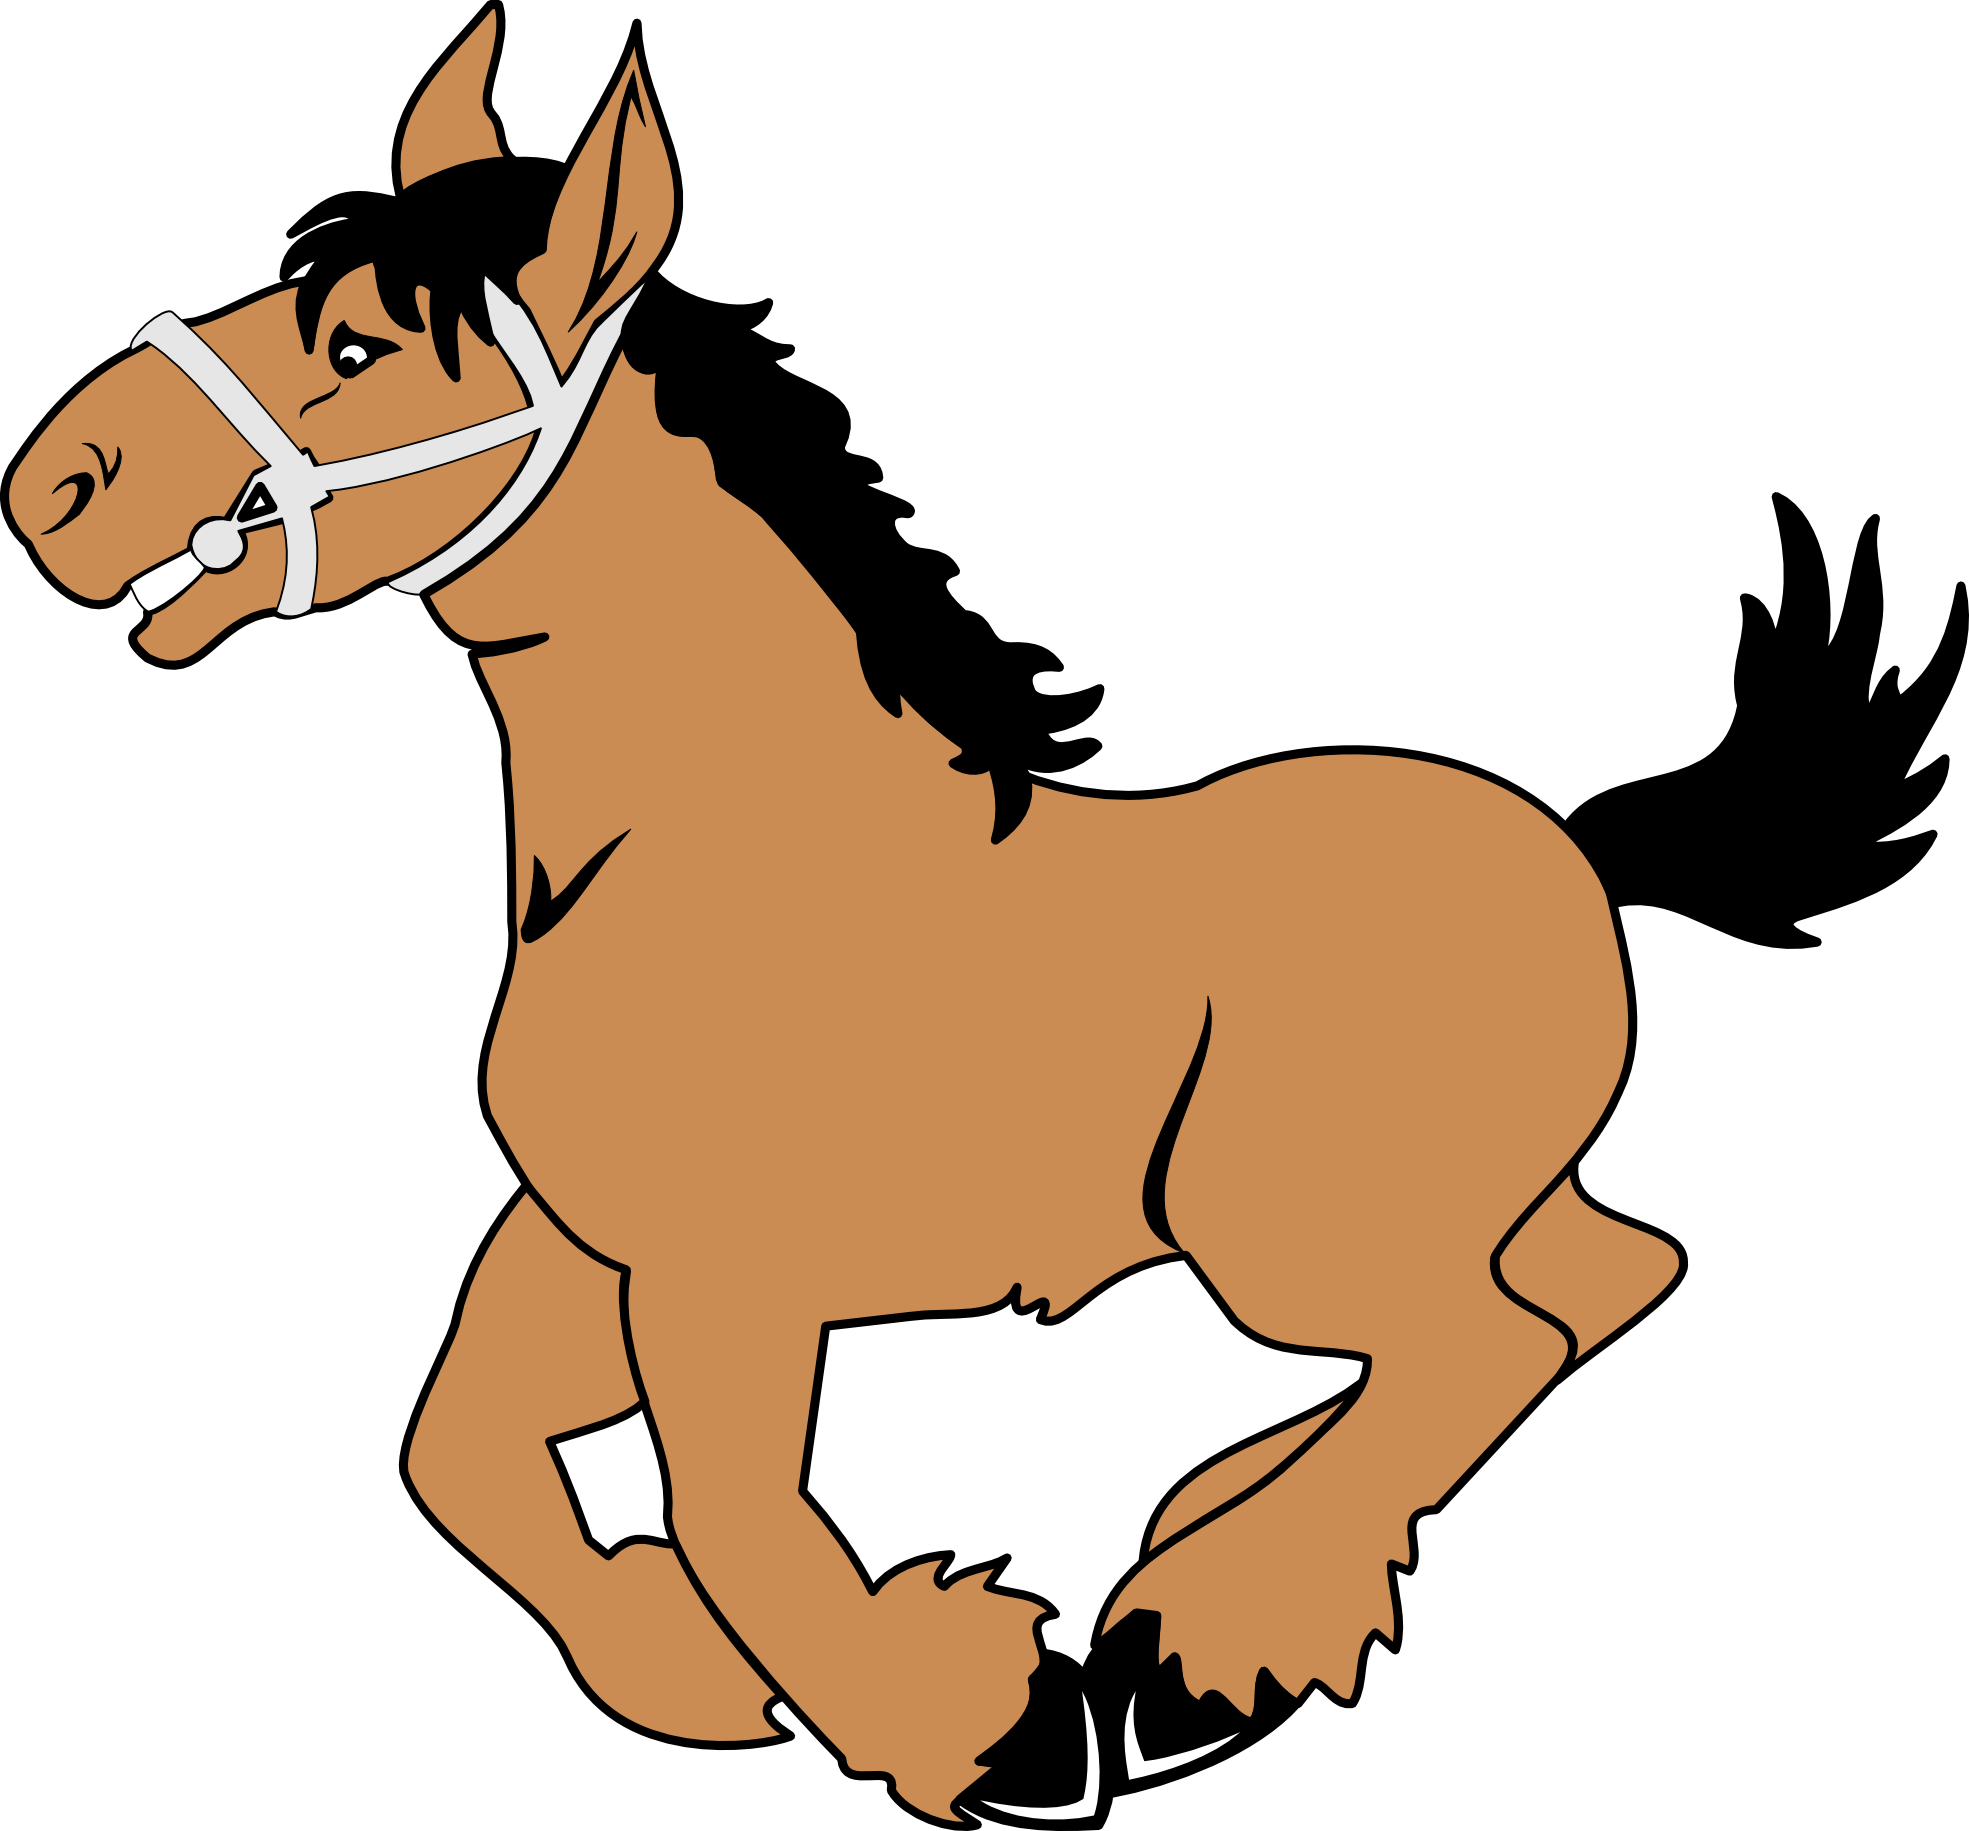 Free clipart cowboys walking with horses border clip transparent stock Free Free Images Of Horses, Download Free Clip Art, Free Clip Art on ... clip transparent stock